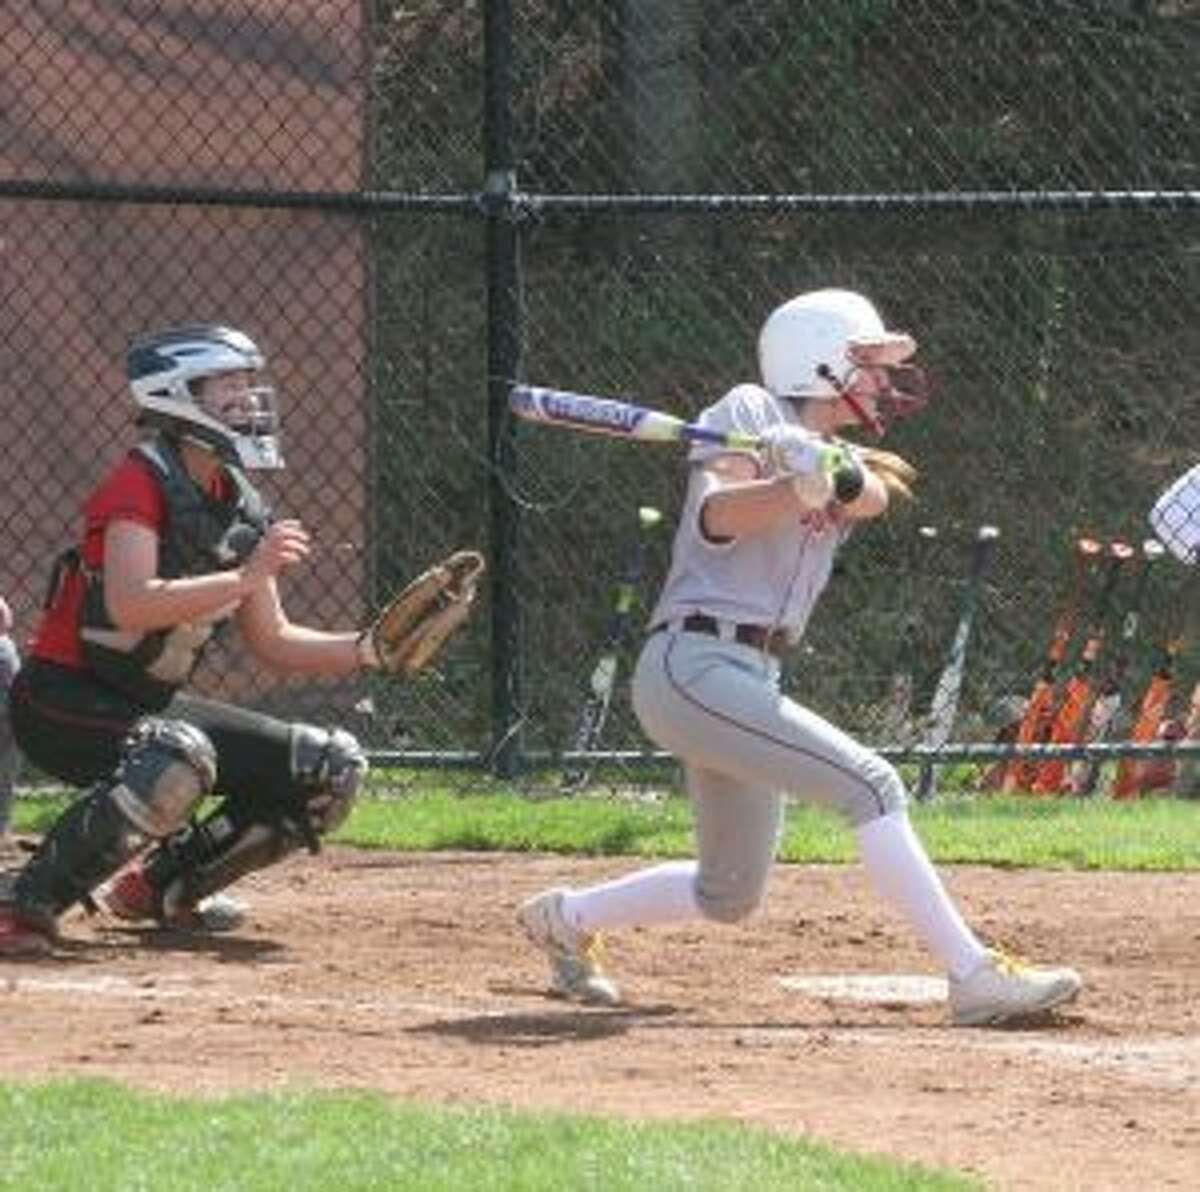 Julia Basso and the Cadets have won five consecutive games. - Bill Bloxsom photo